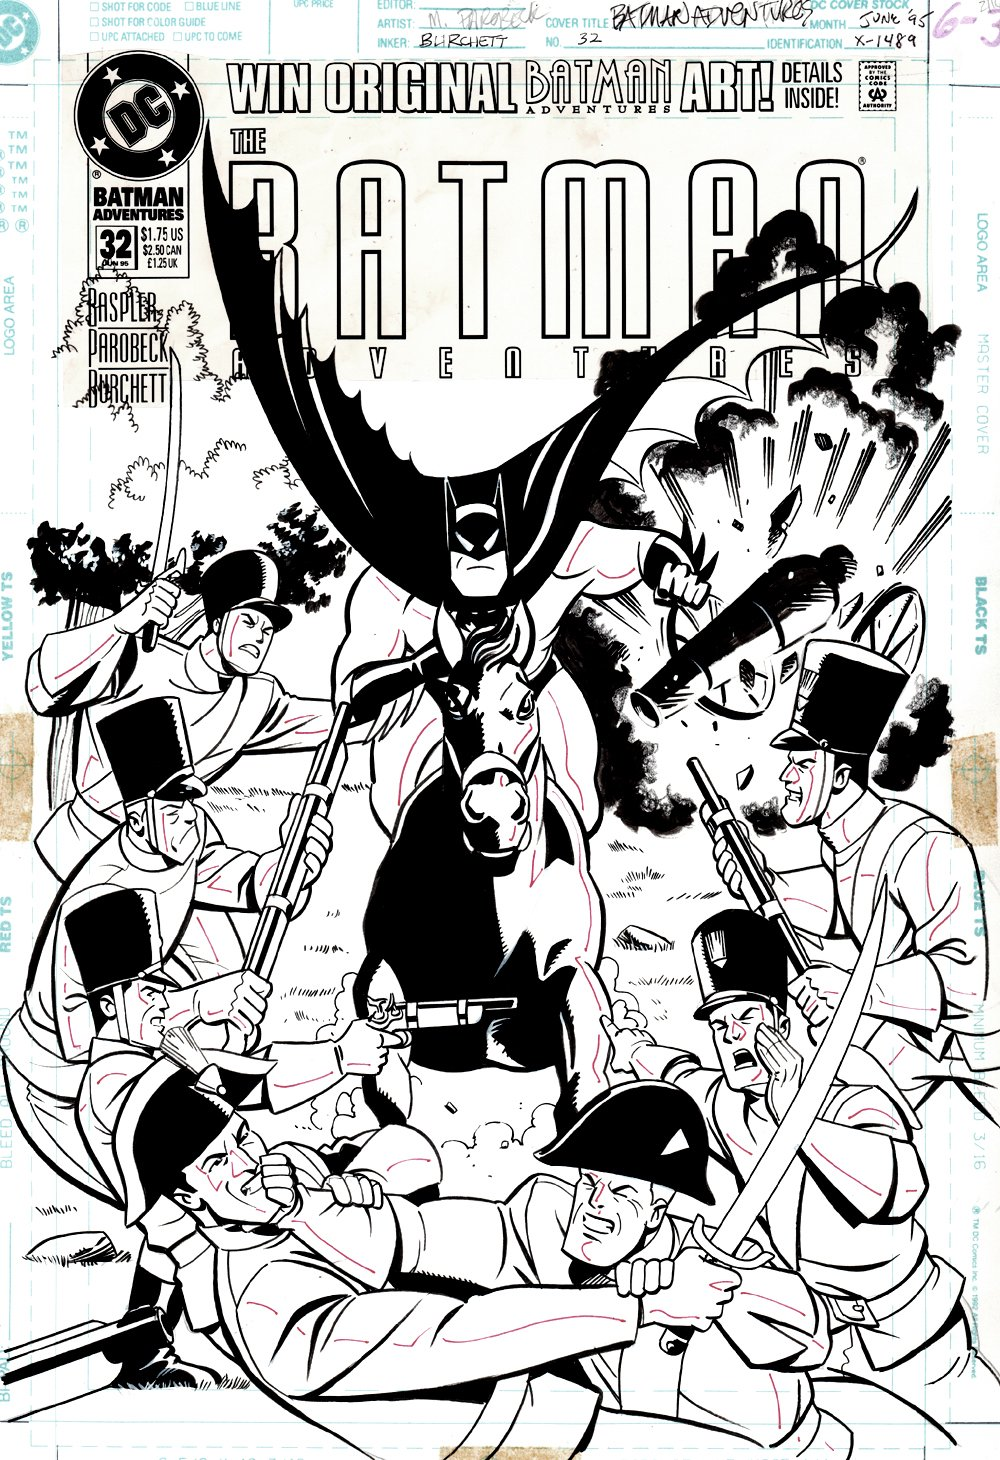 Batman Adventures #32 Cover (Great BATMAN On Horseback Charging Image!) 1995